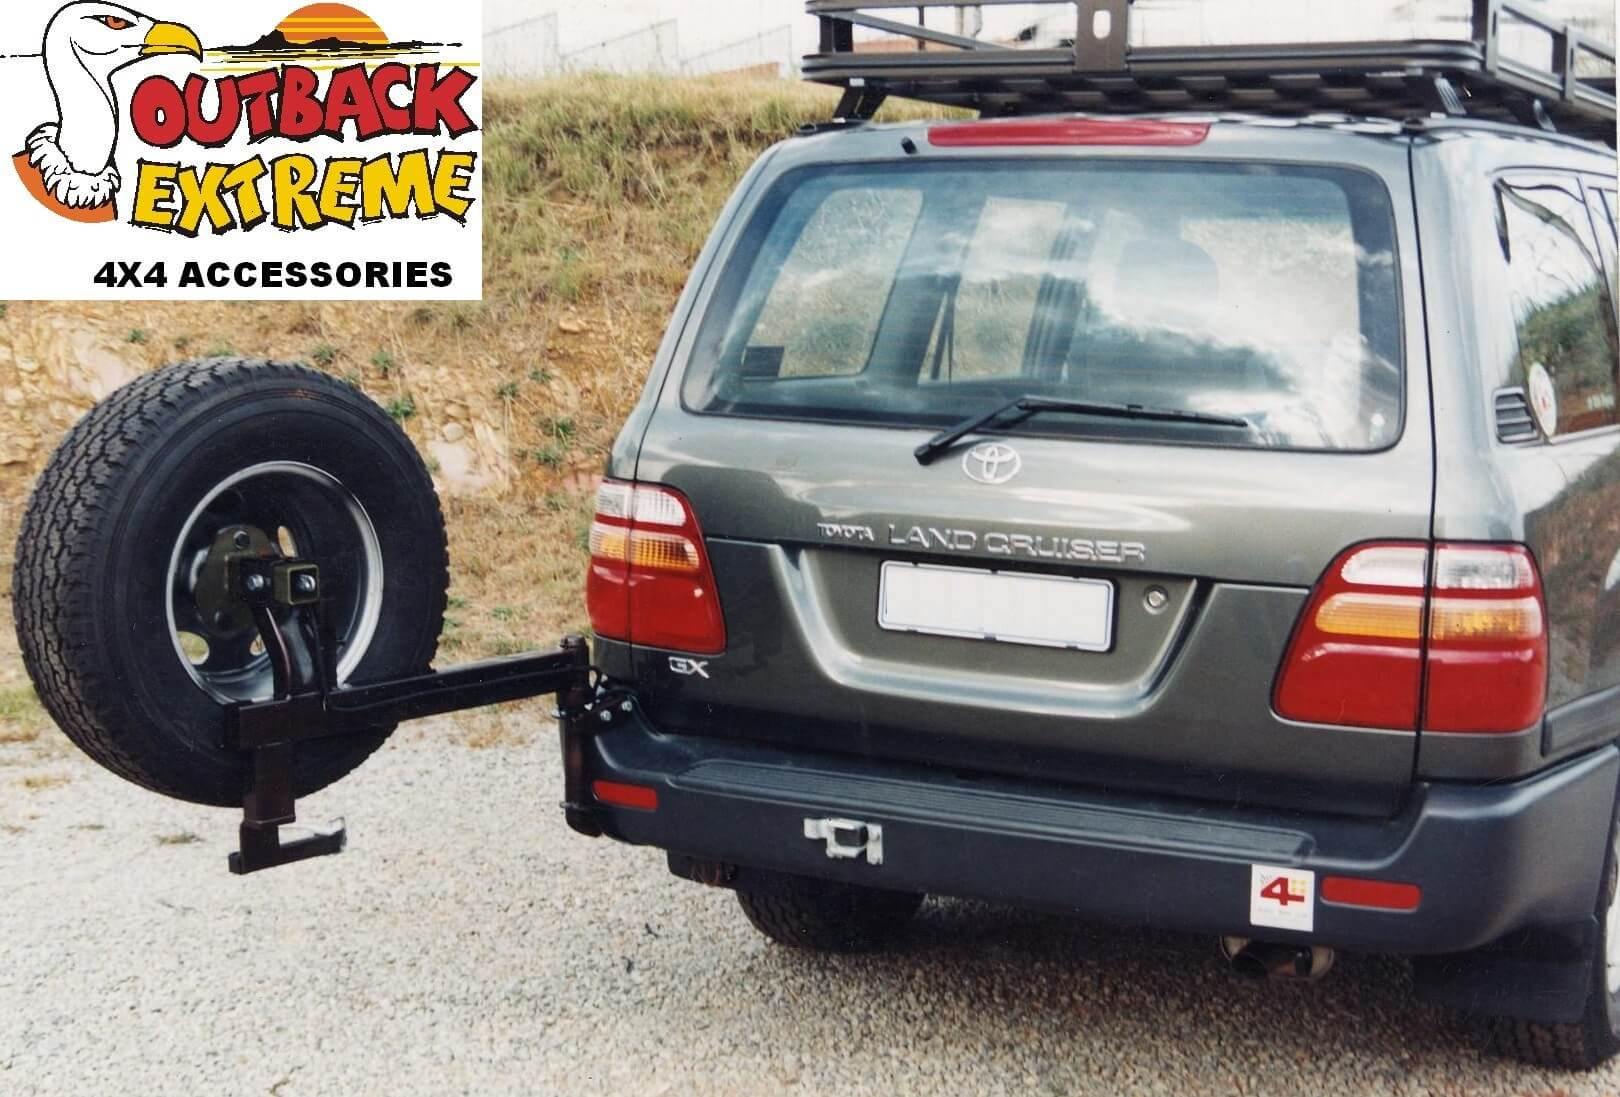 Toyota – Outback Extreme